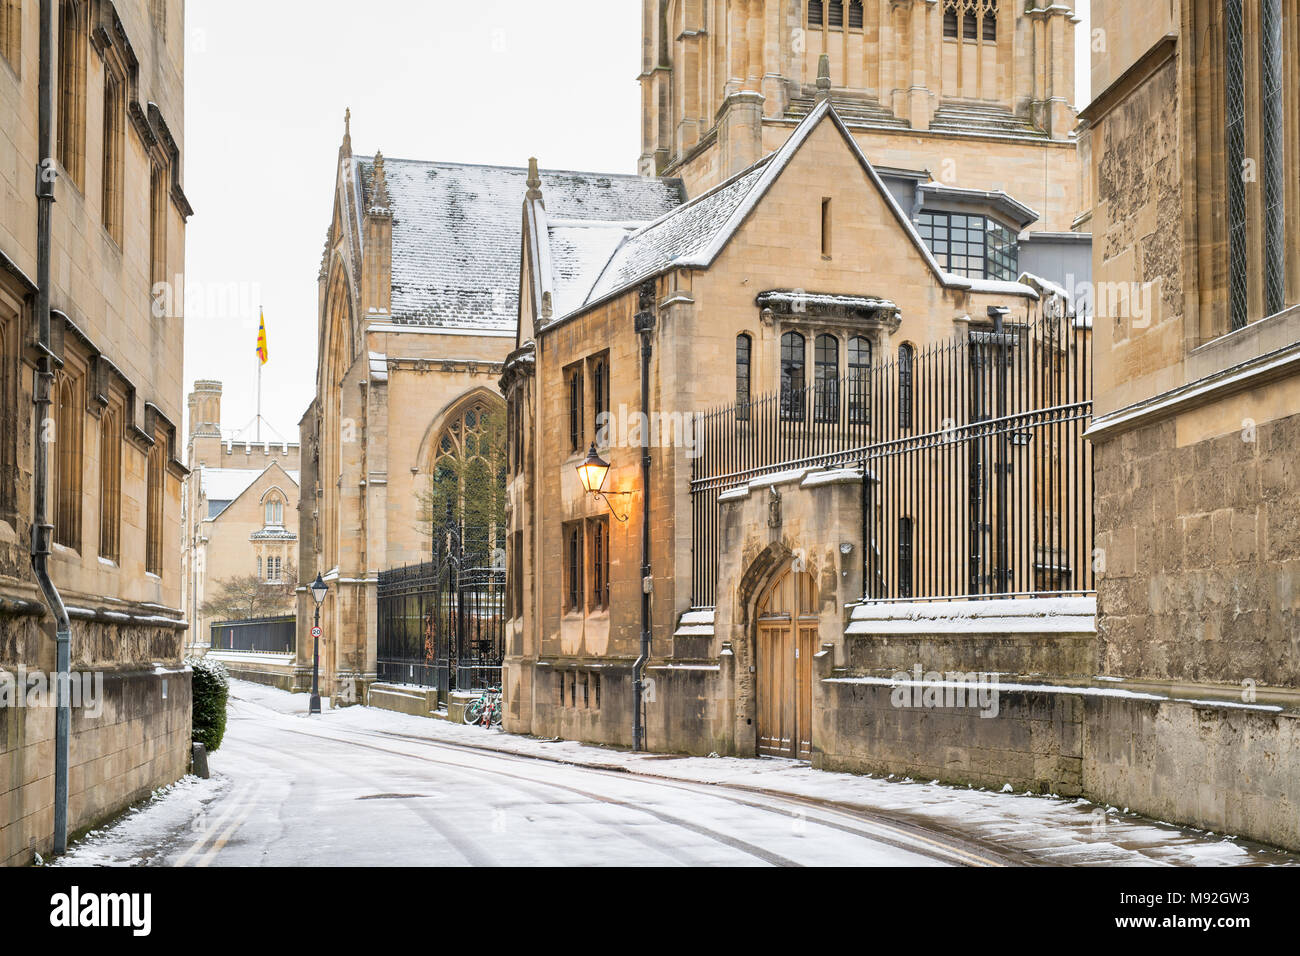 Merton street in the early morning snow. Oxford, Oxfordshire, England - Stock Image